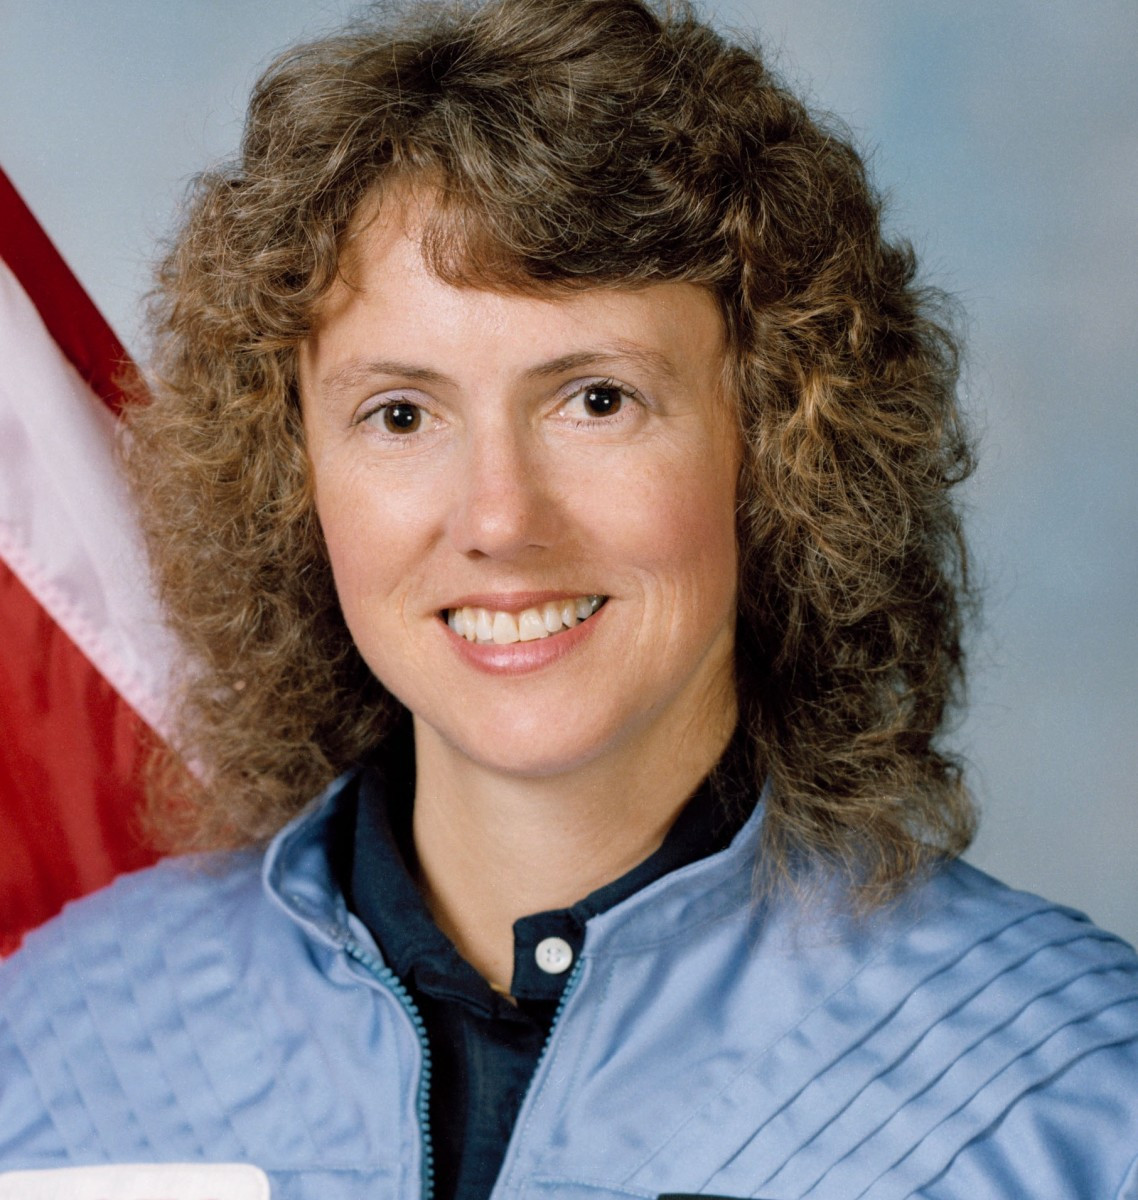 Christa-McAuliffe-First-American-Civilian-to-go-to-Space